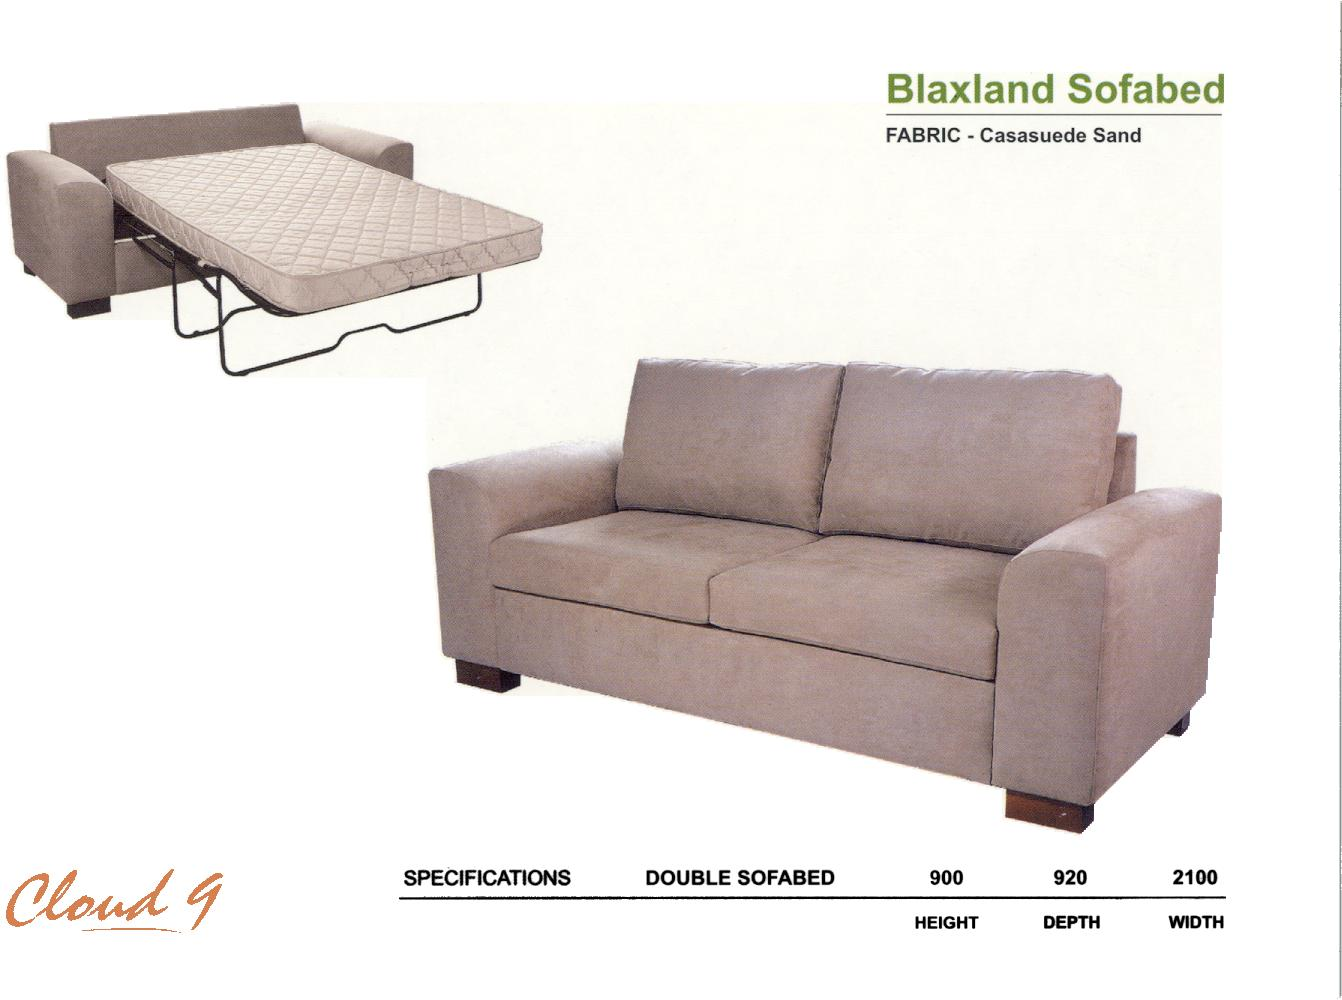 Blaxland Sofa Bed